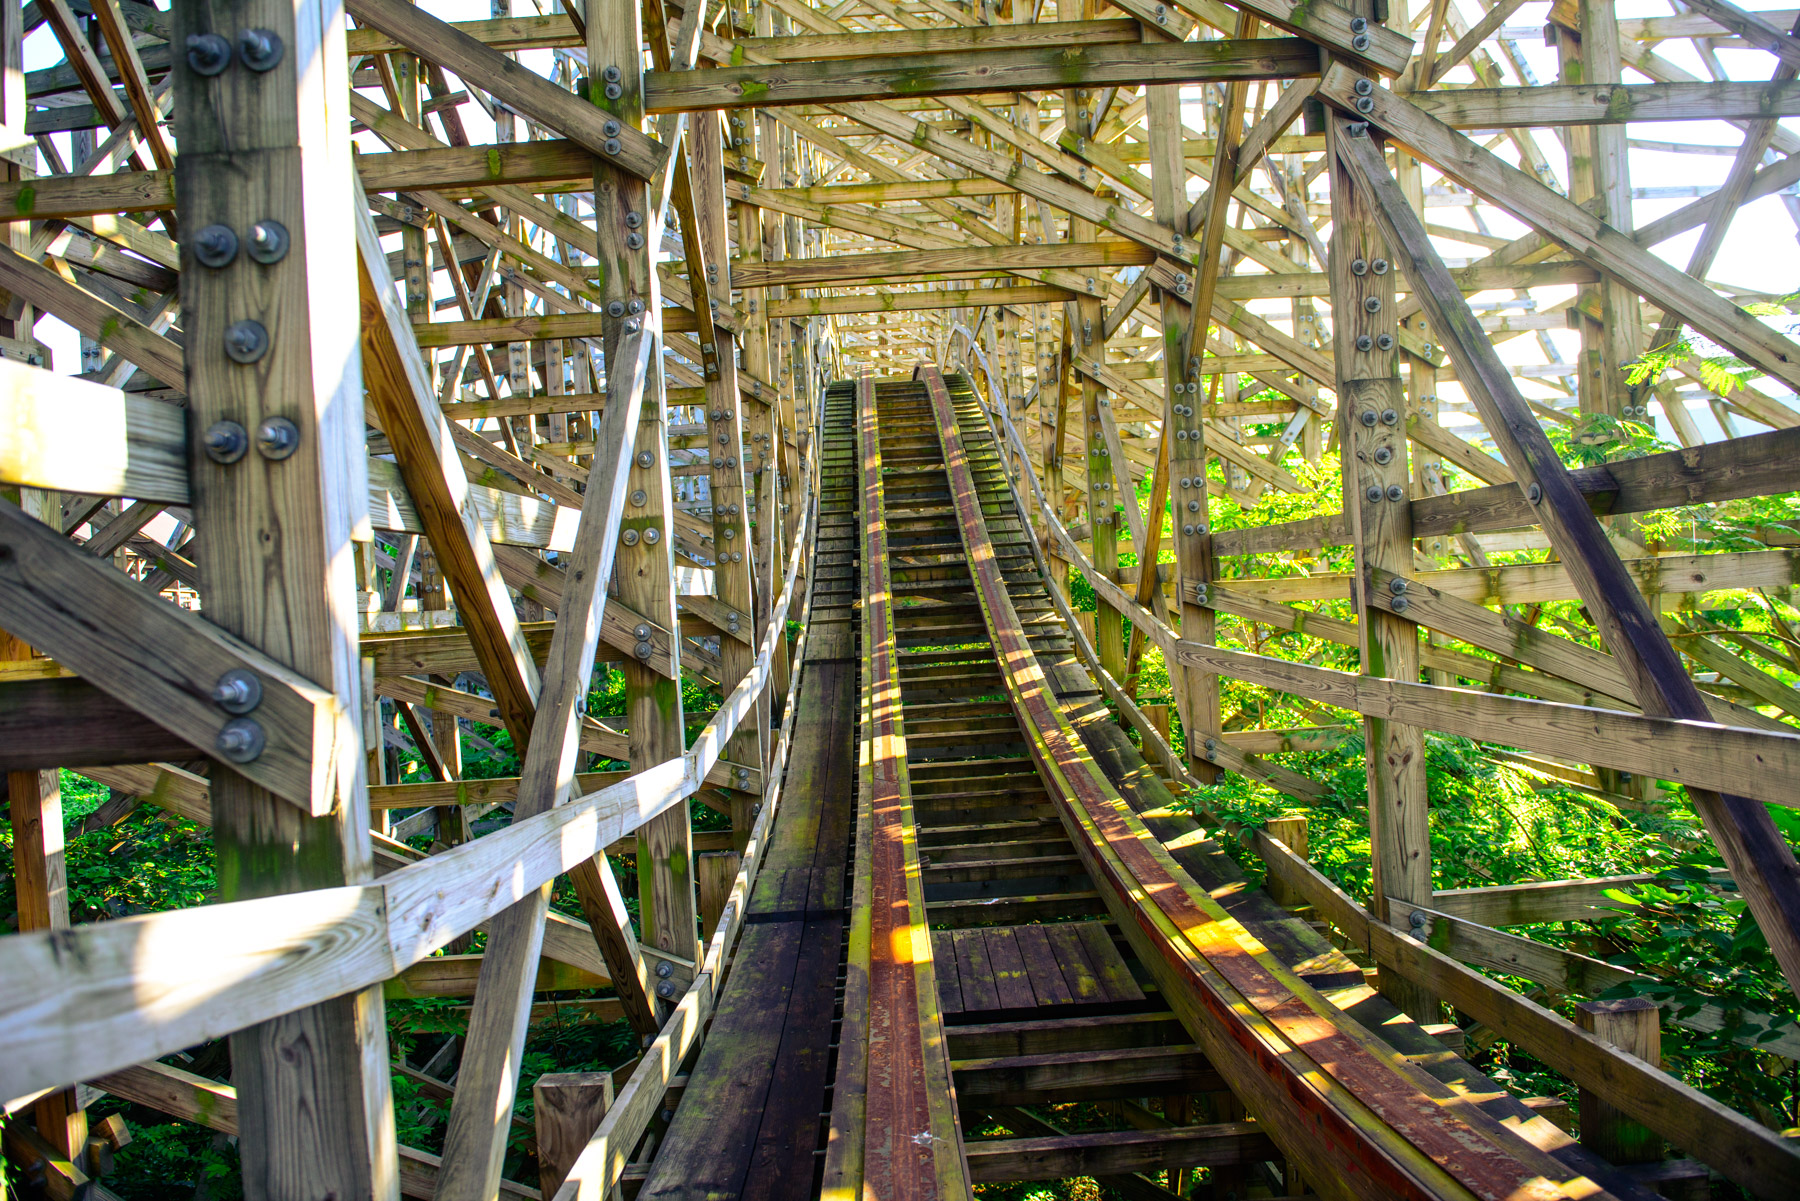 abandoned, amusement-park, asia, attraction-park, haikyo, japan, japanese, kansai, nara, ruin, theme-park, urban exploration, urbex